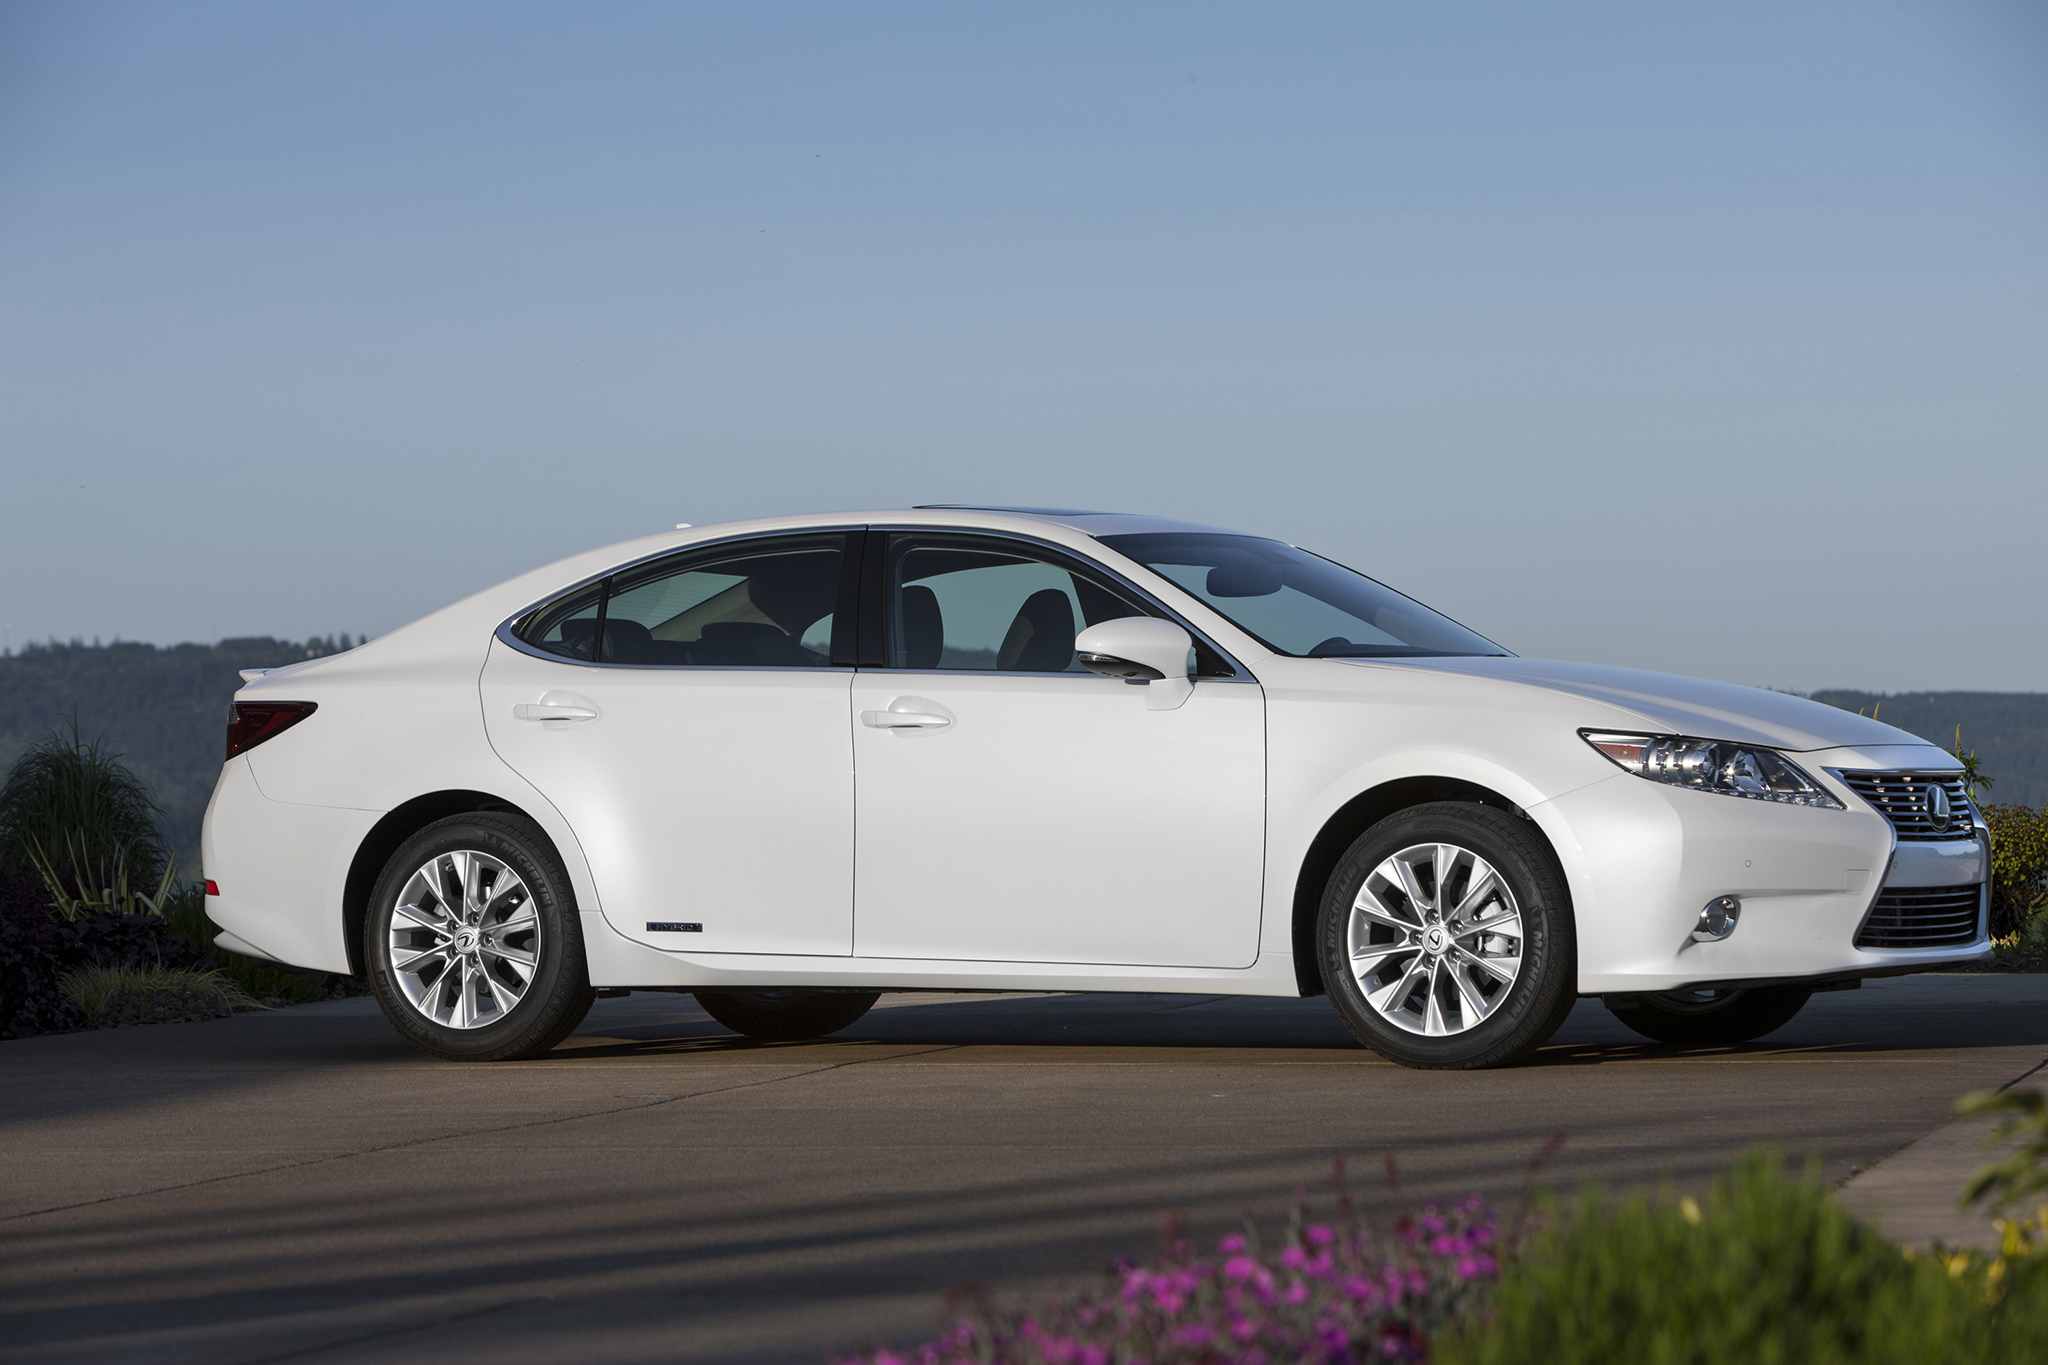 es reviews long review car lexus carsguide sports luxury term